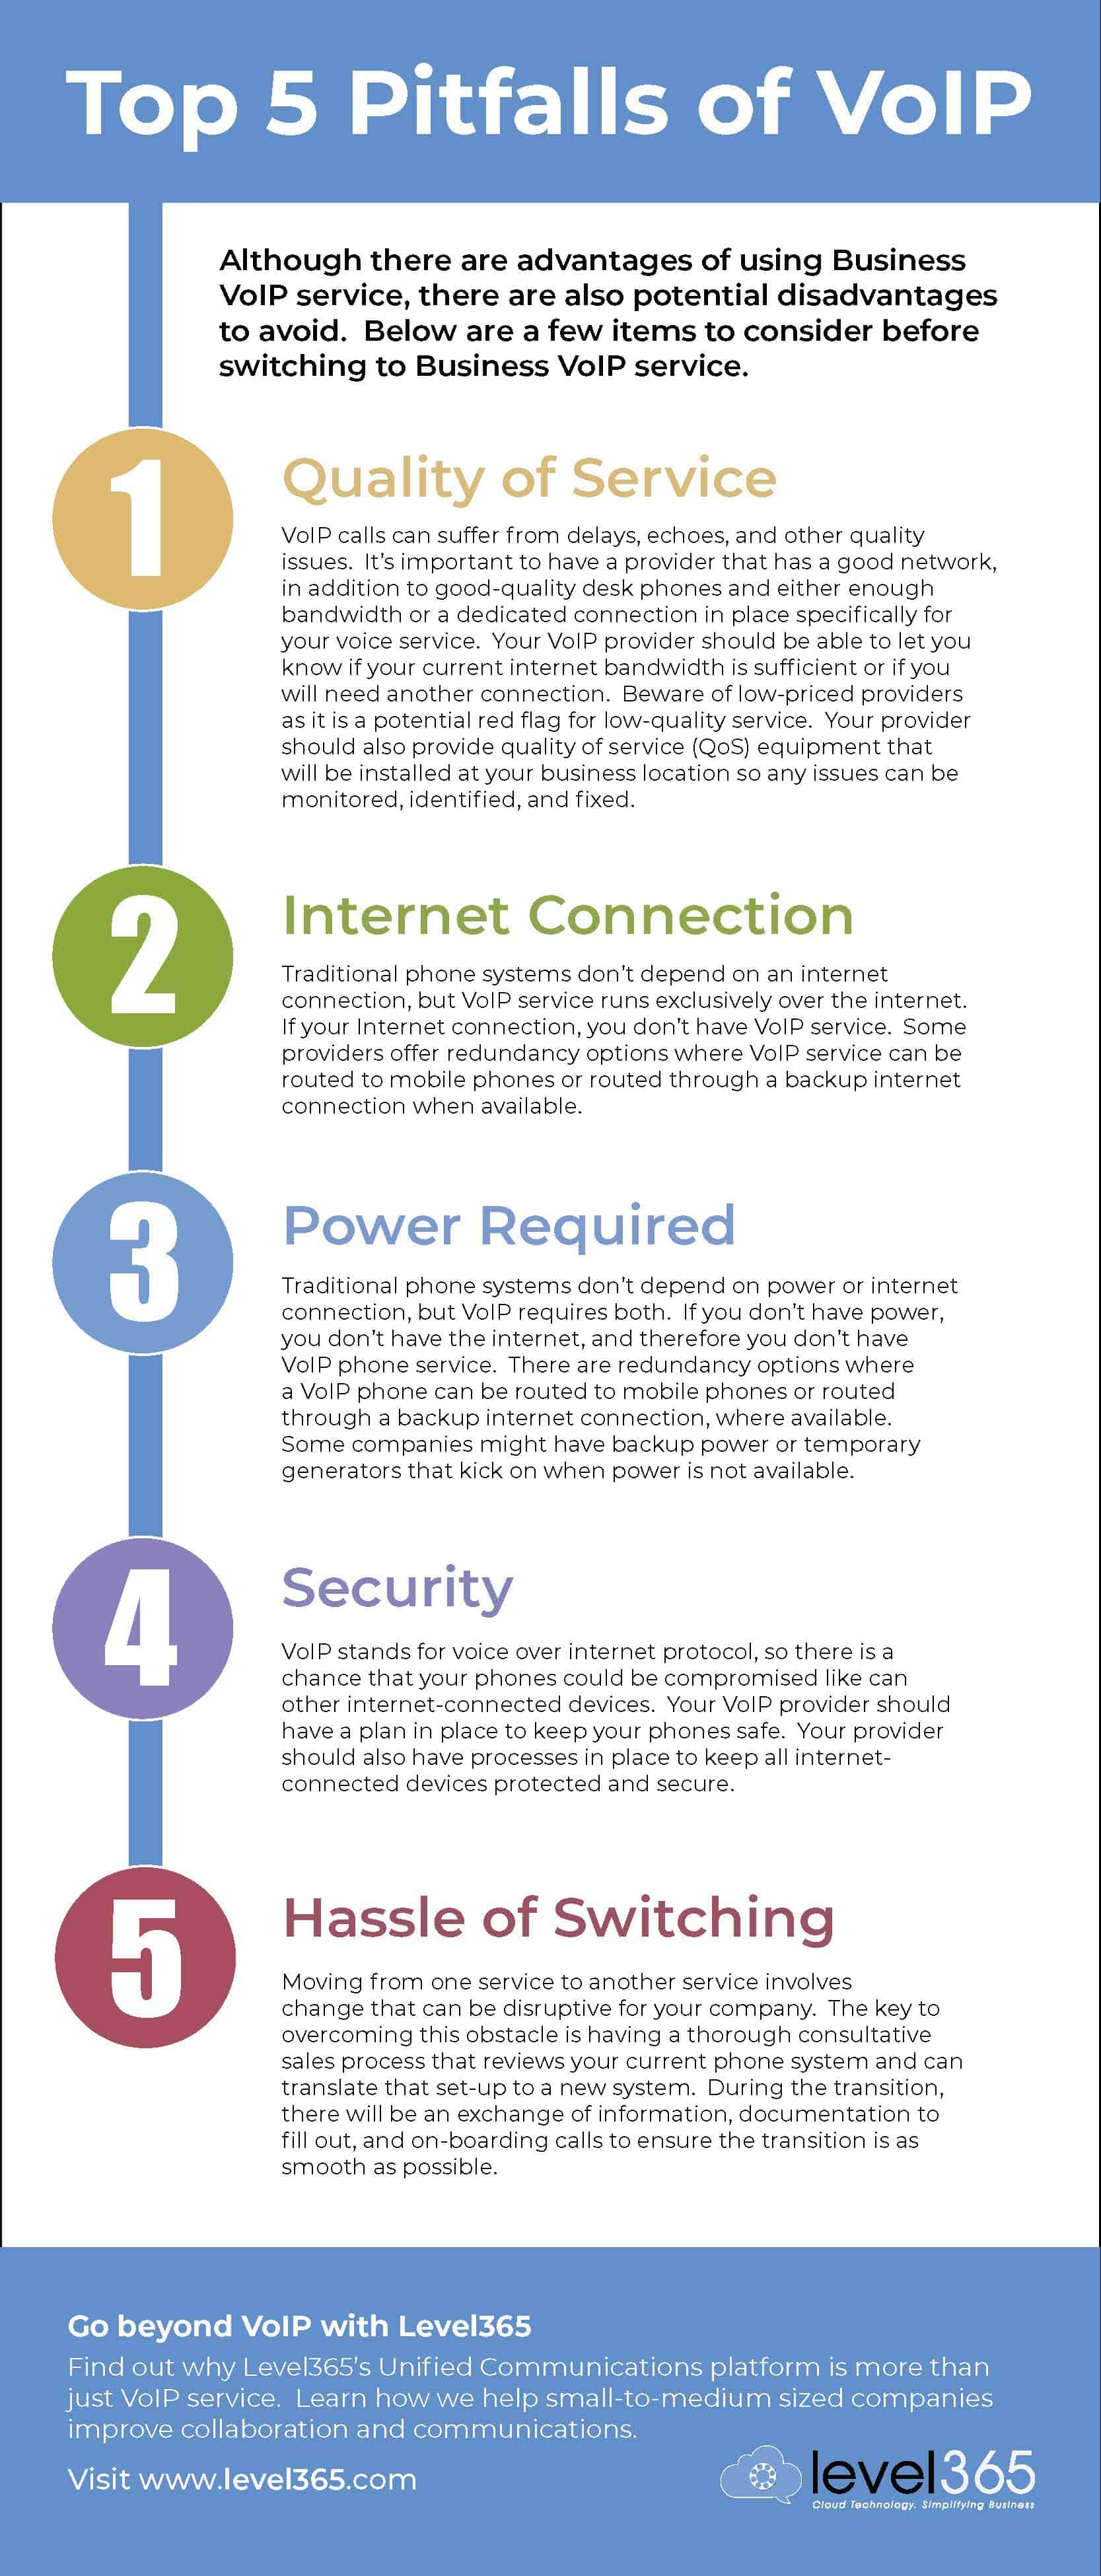 Infographic_Top-5-Pitfalls-of-VoIP_updated_FINAL_Oct2419.jpg